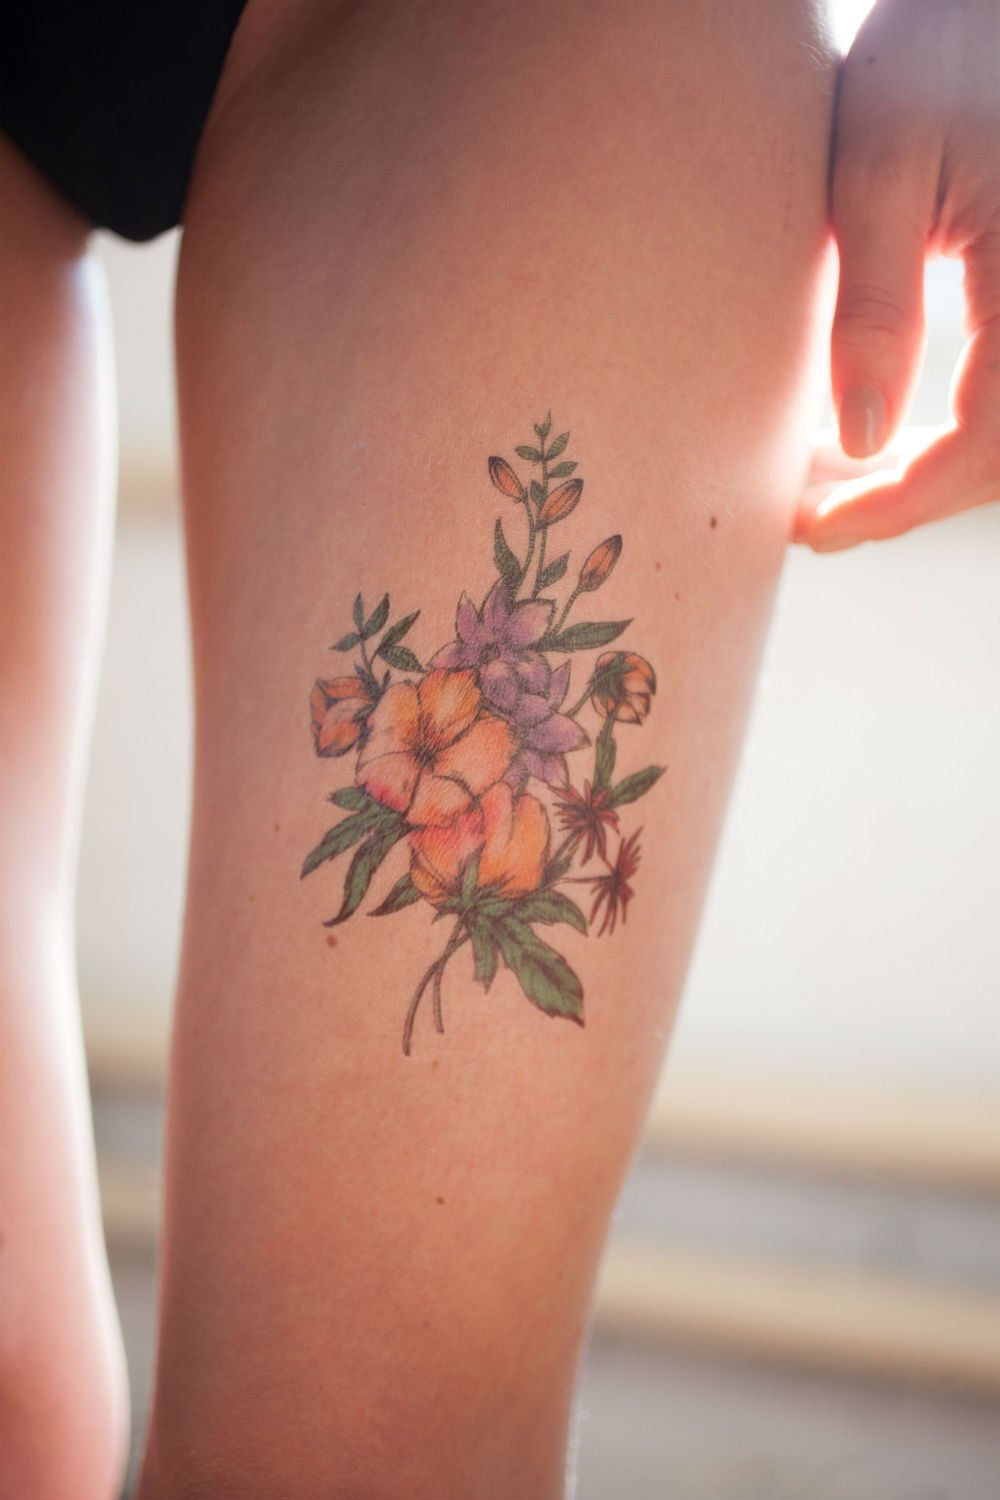 Amazon.com : Watercolor Flower Bouquet Temporary Tattoo - Realistic ...